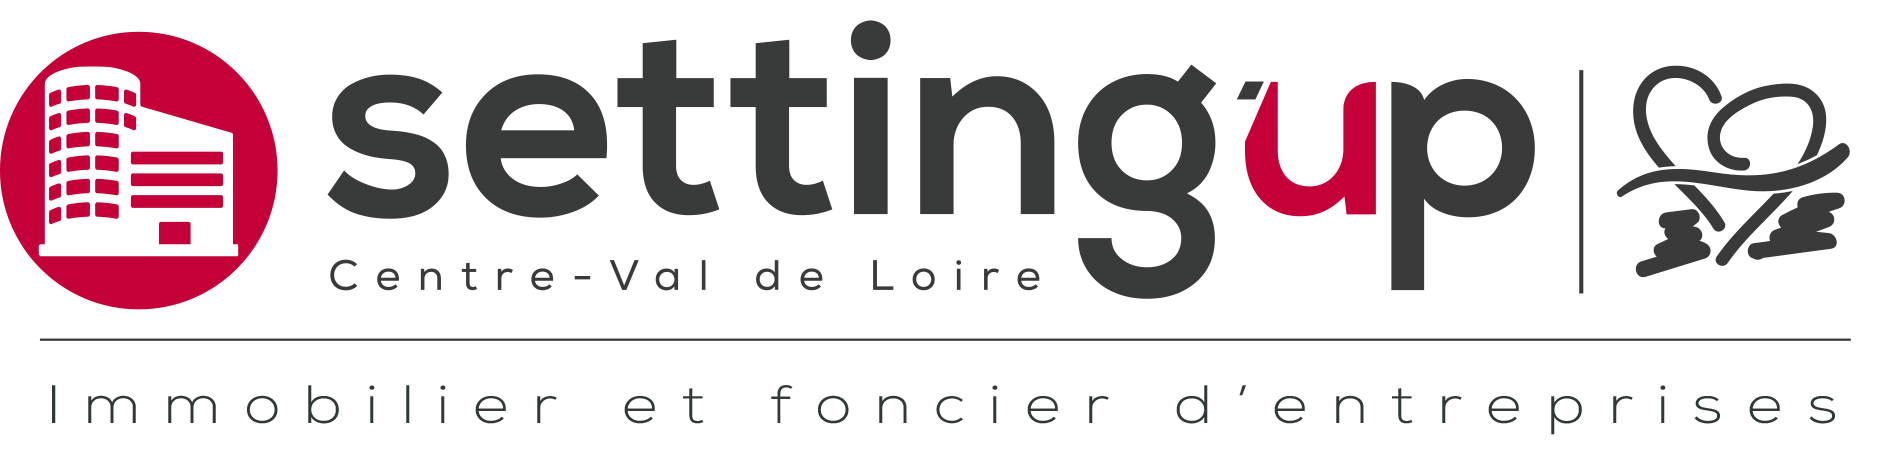 Setting Up logo